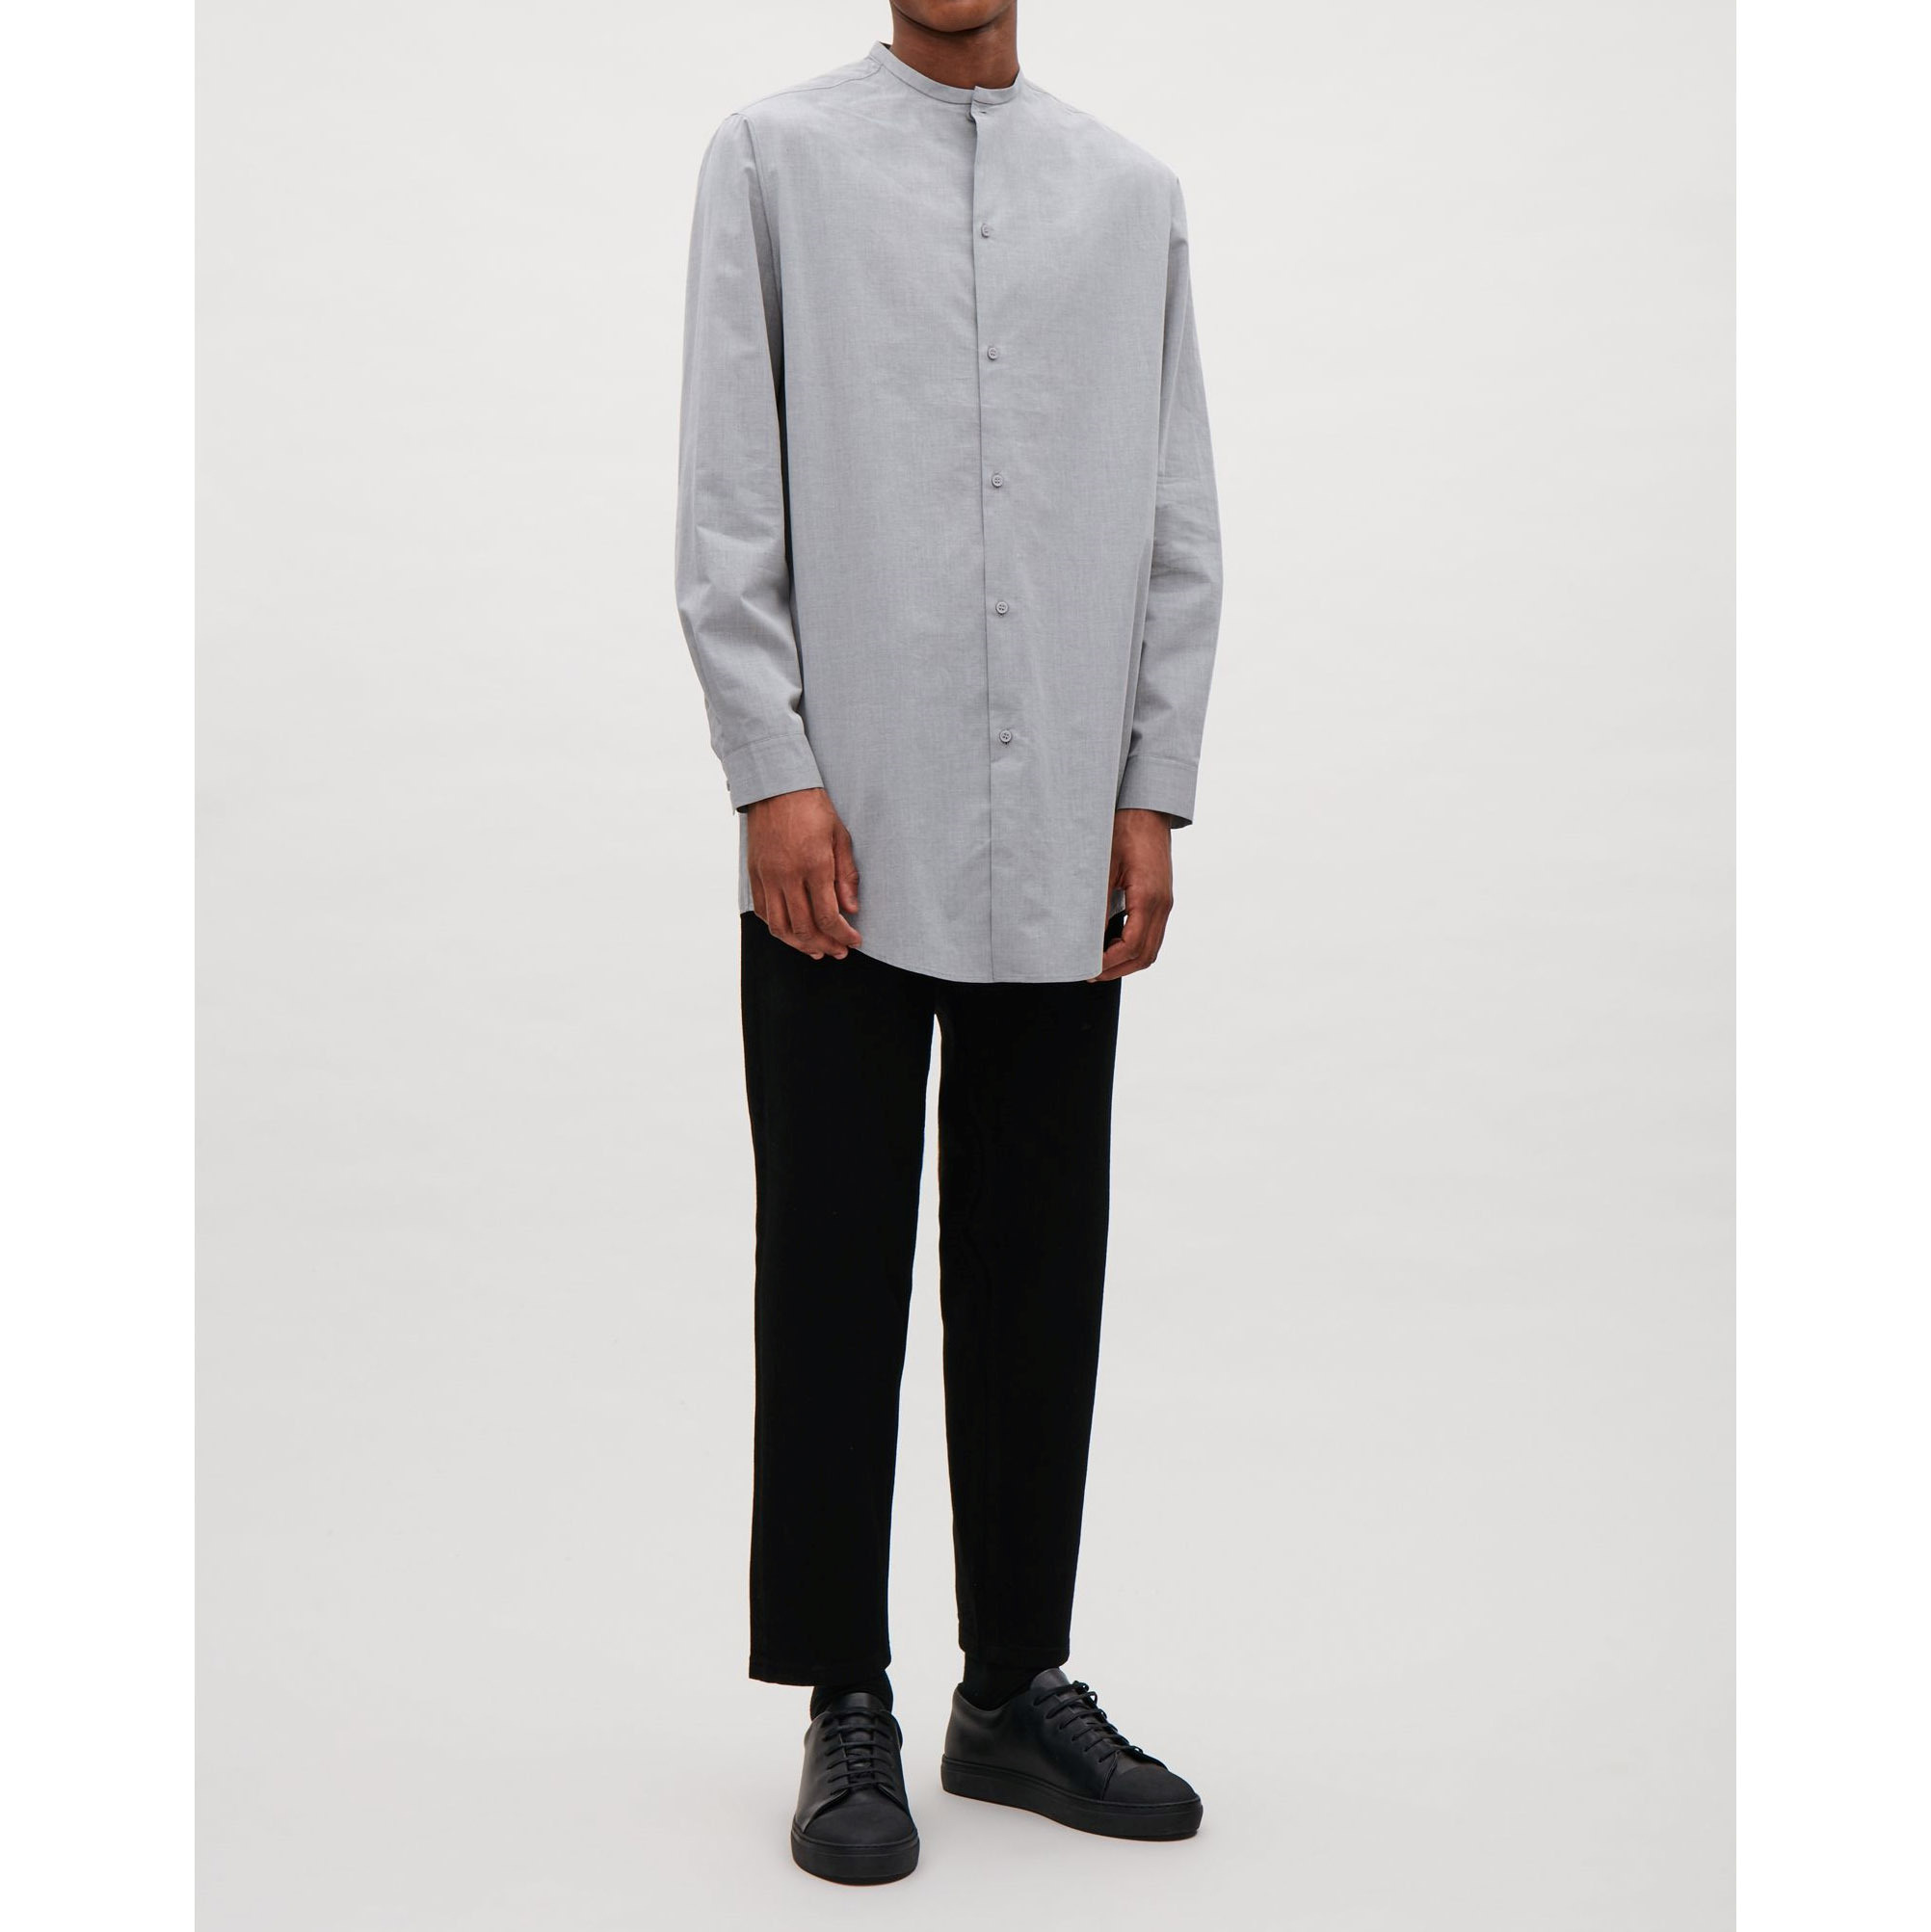 COS☆GRANDAD-COLLAR SHIRT / grey